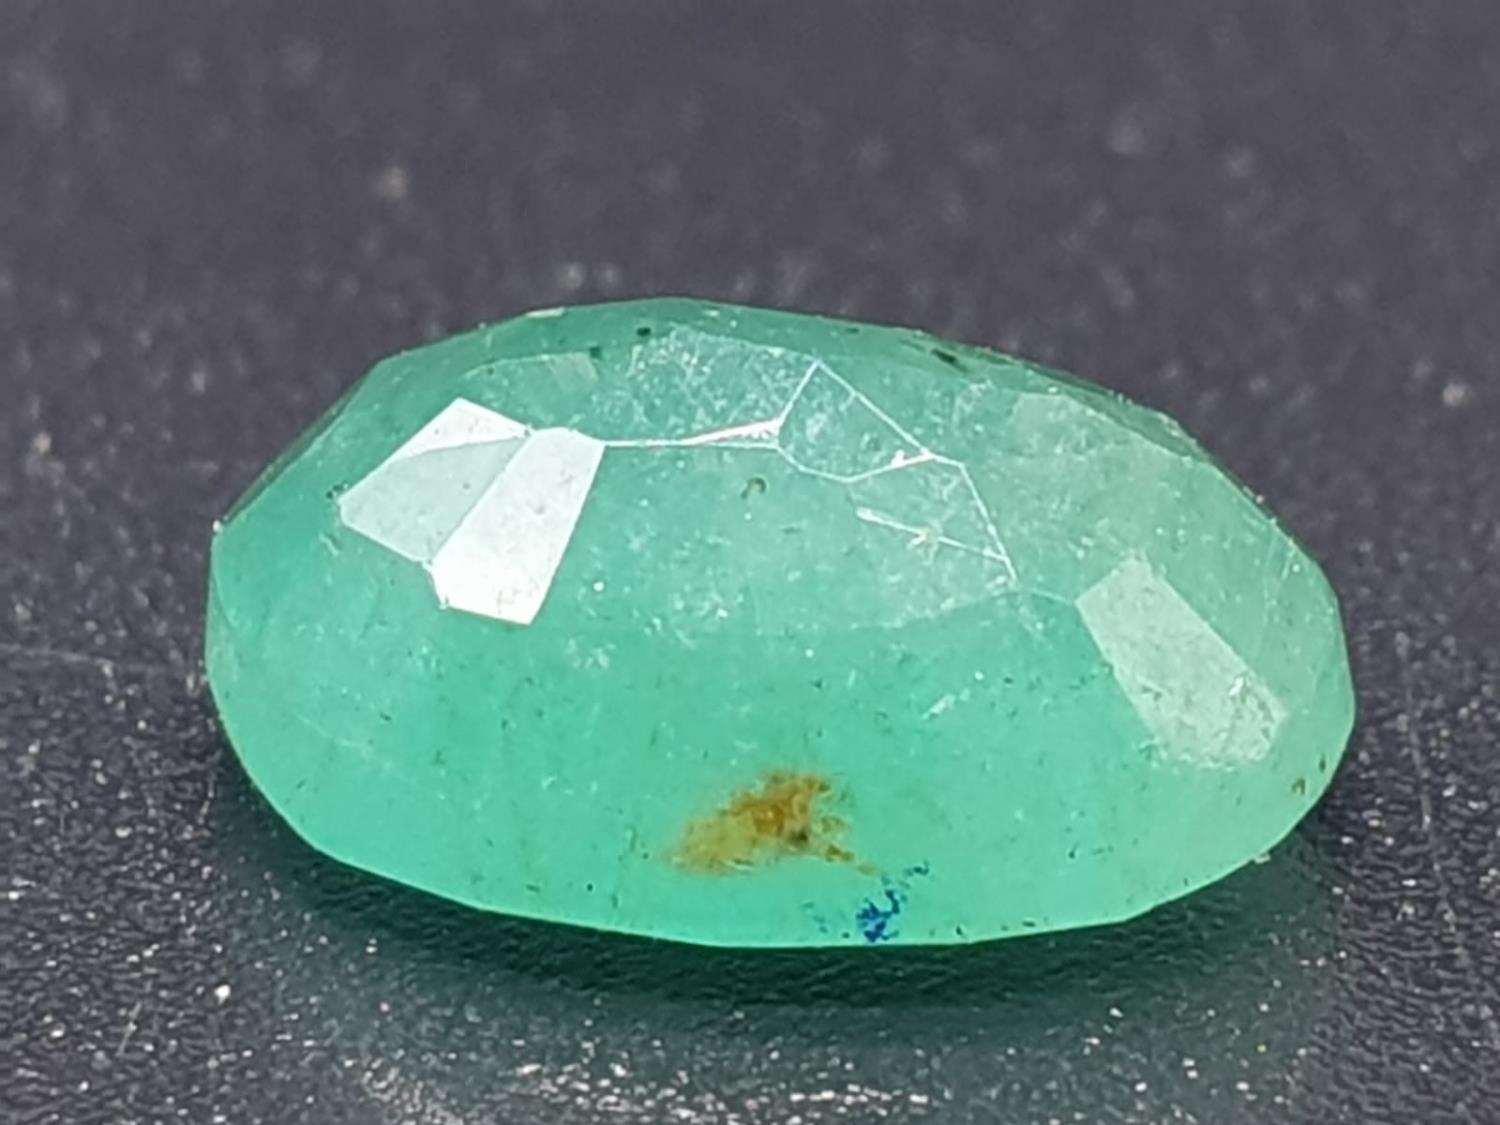 2.01 Ct Natural Loose Emerald. Oval shape. IDT certified - Image 2 of 6